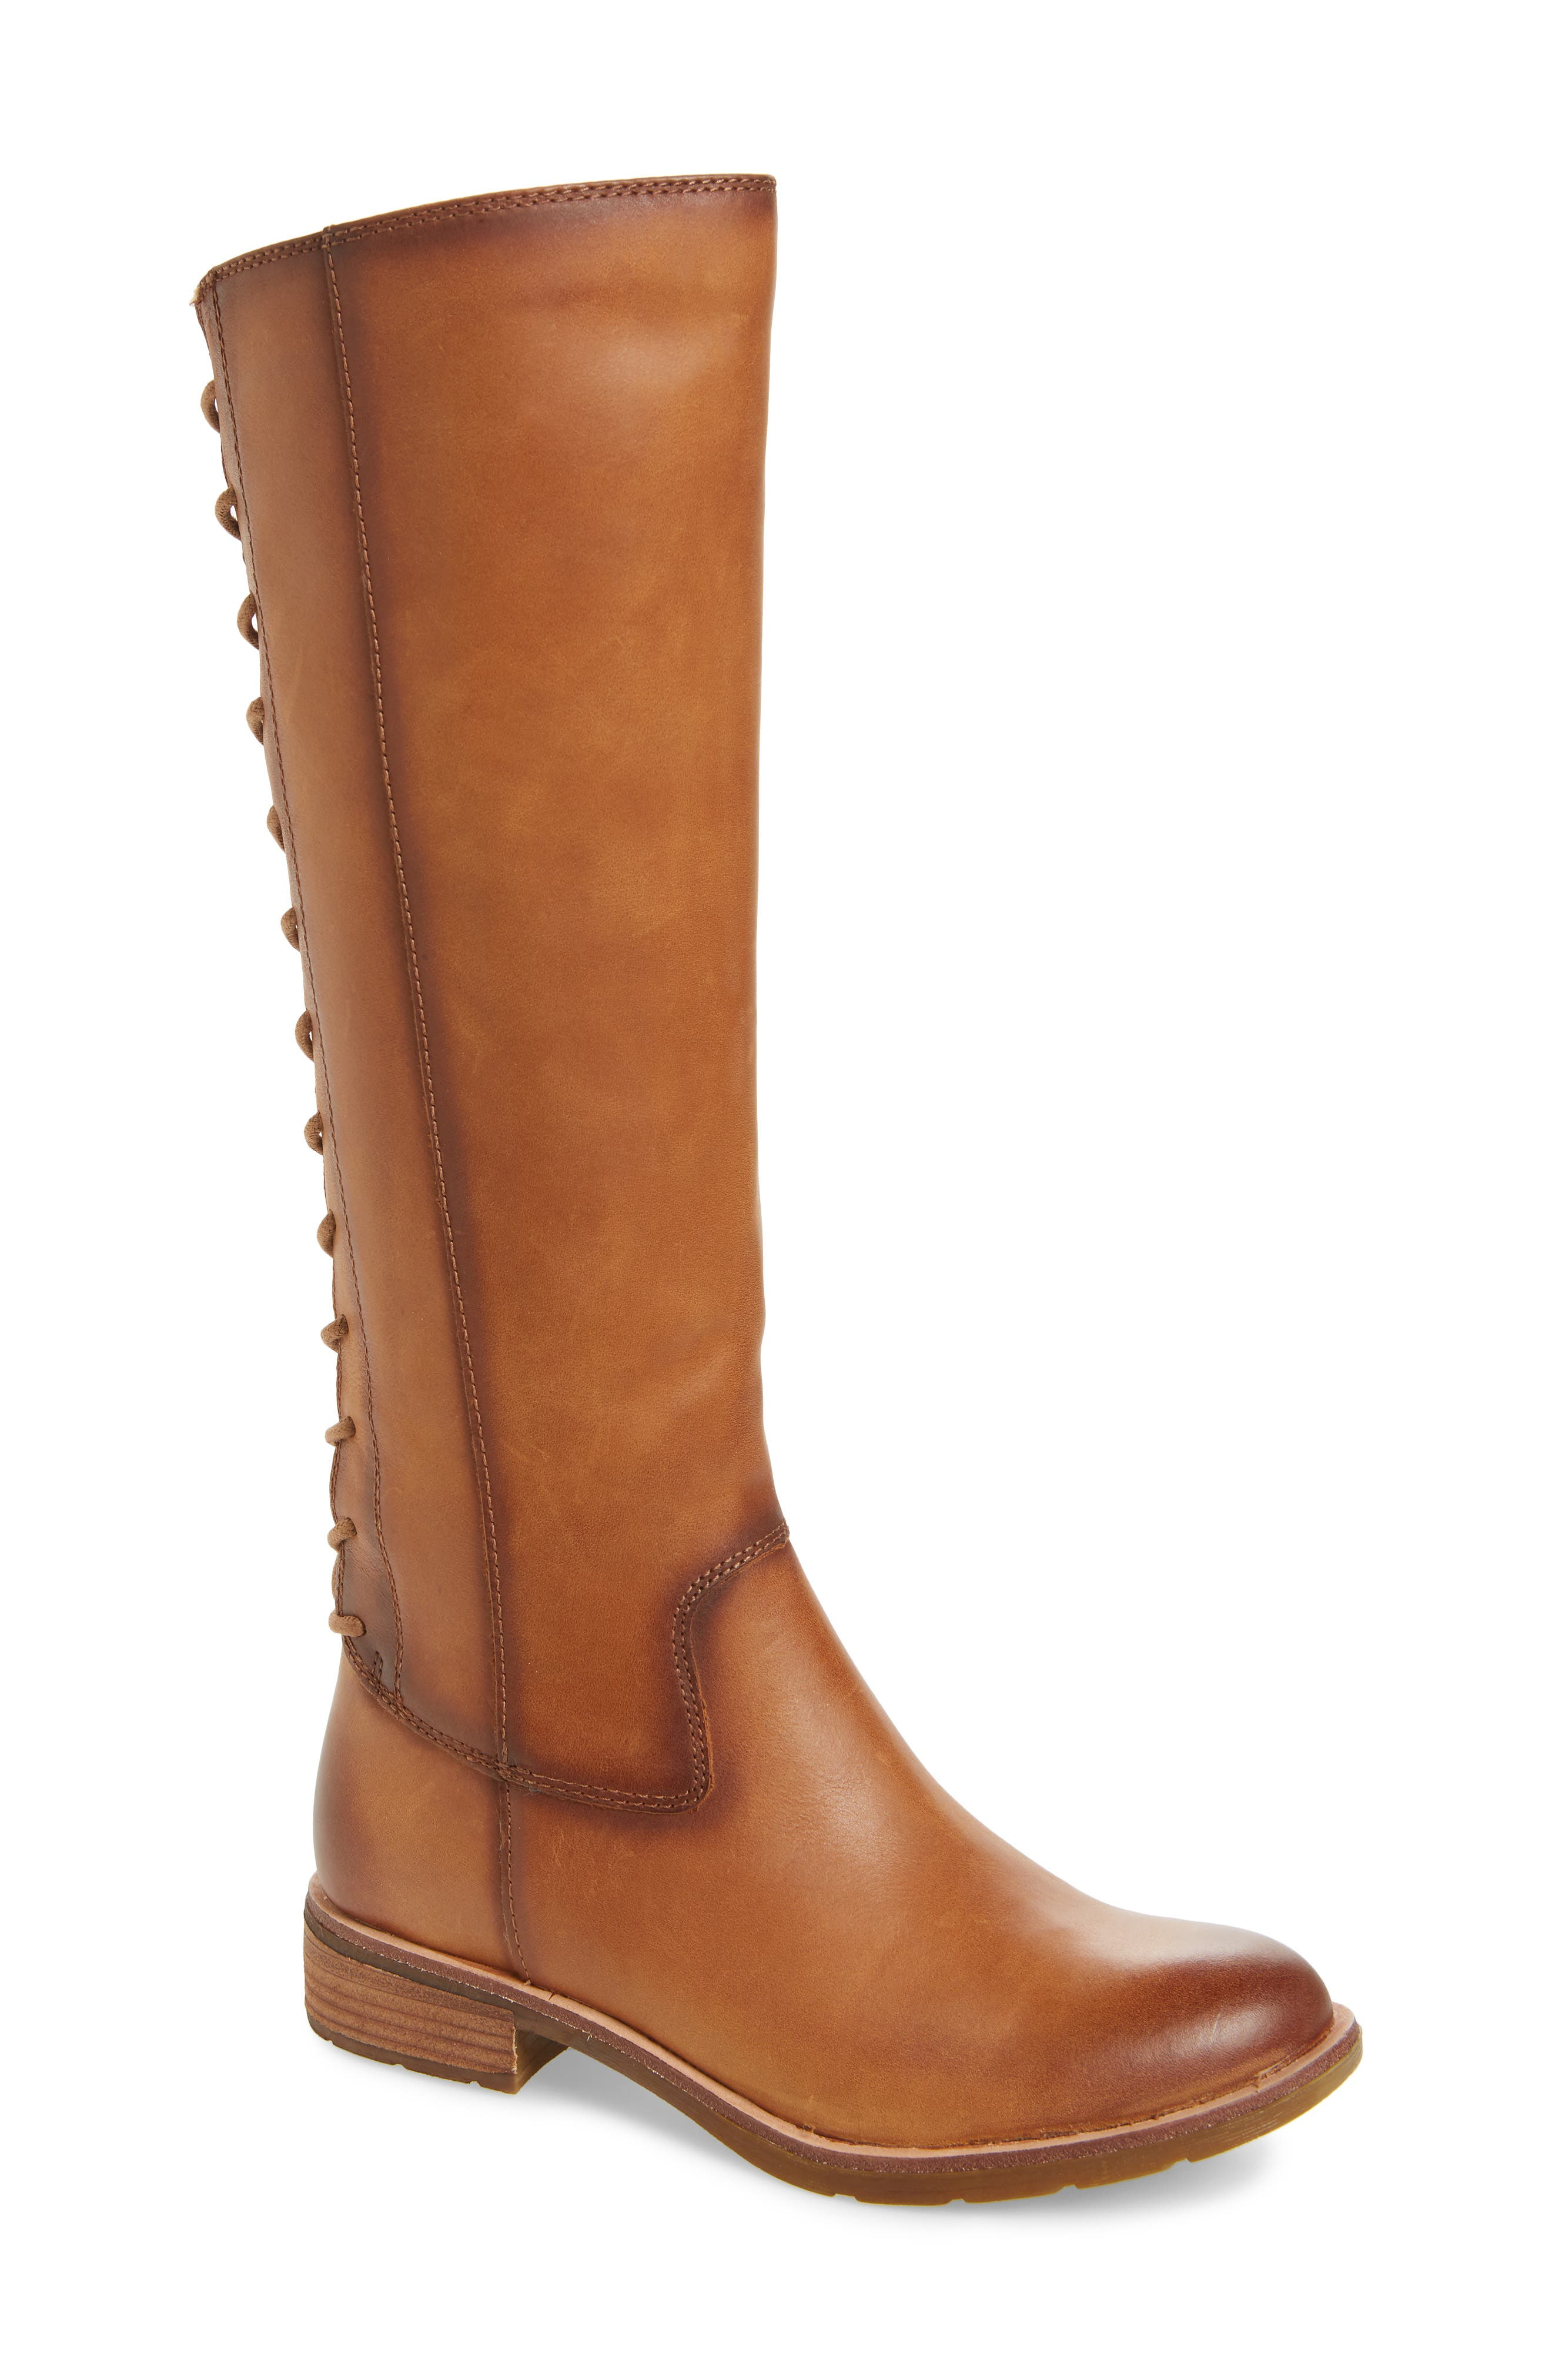 Sharnell II Knee High Boot,                         Main,                         color, BISCUIT LEATHER